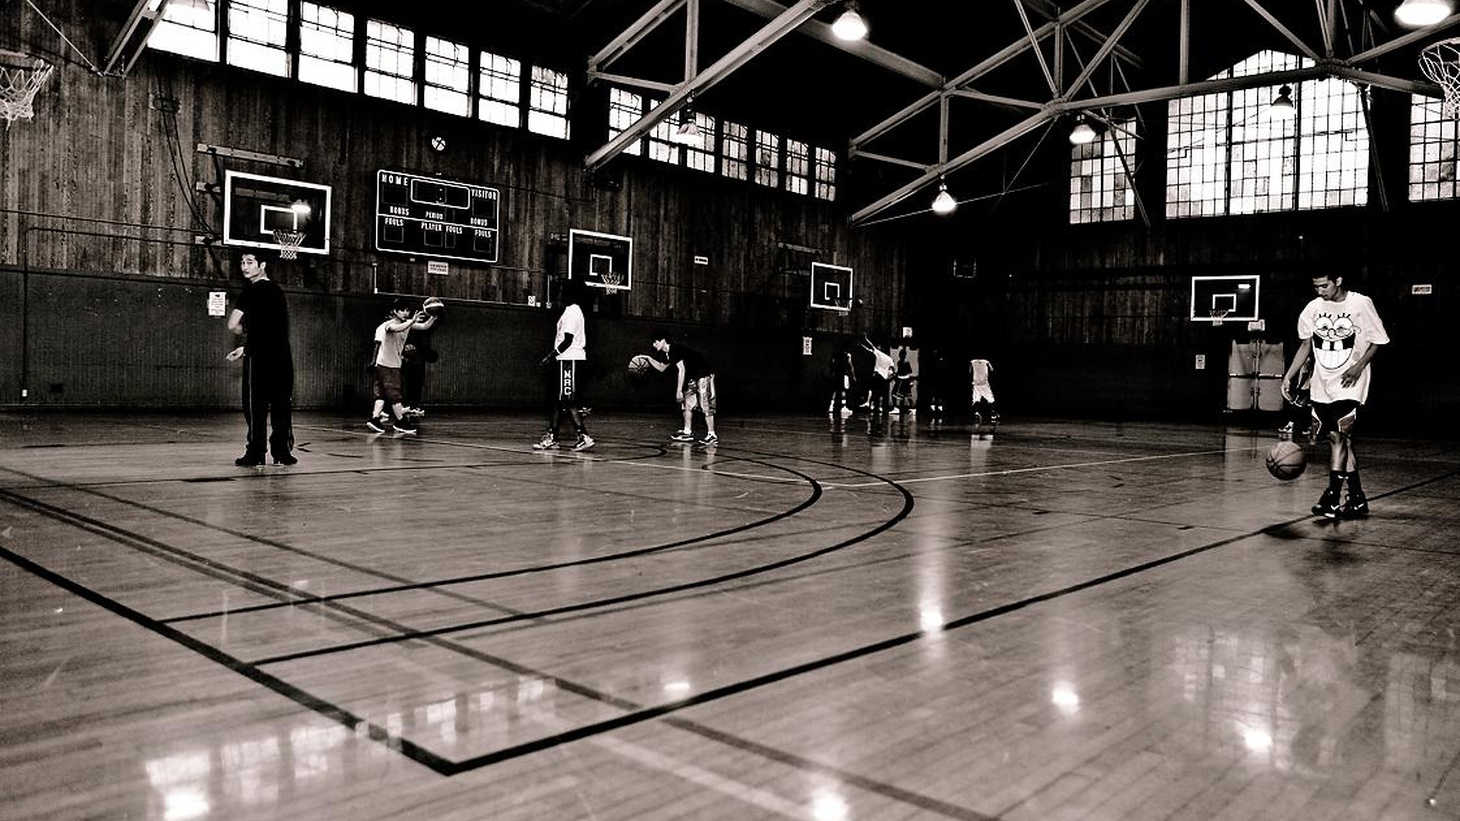 This week, two stories about life, family and basketball... (Repeated from October 21, 2011)